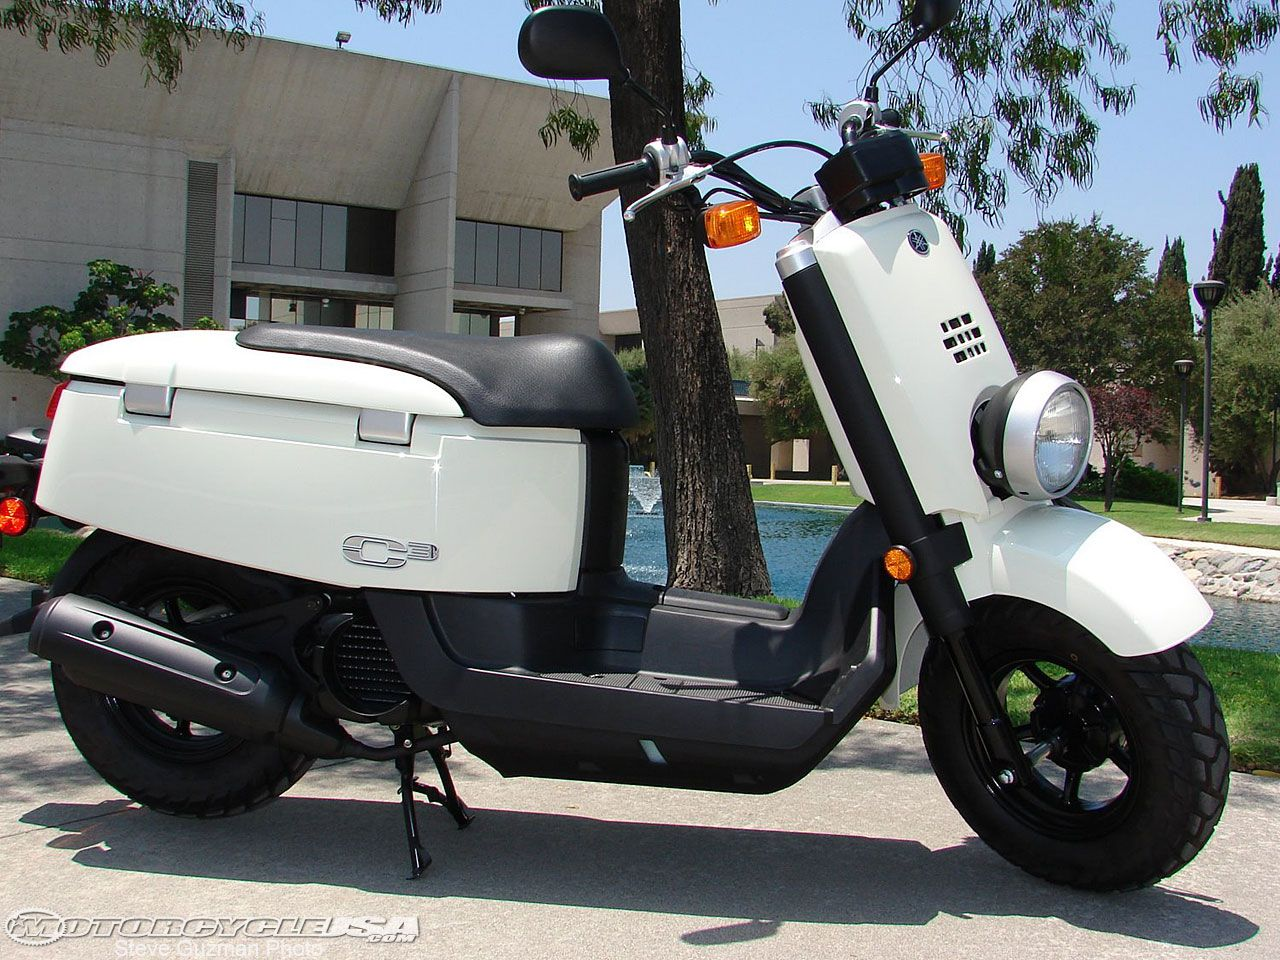 2008 Yamaha C3 Scooter Review